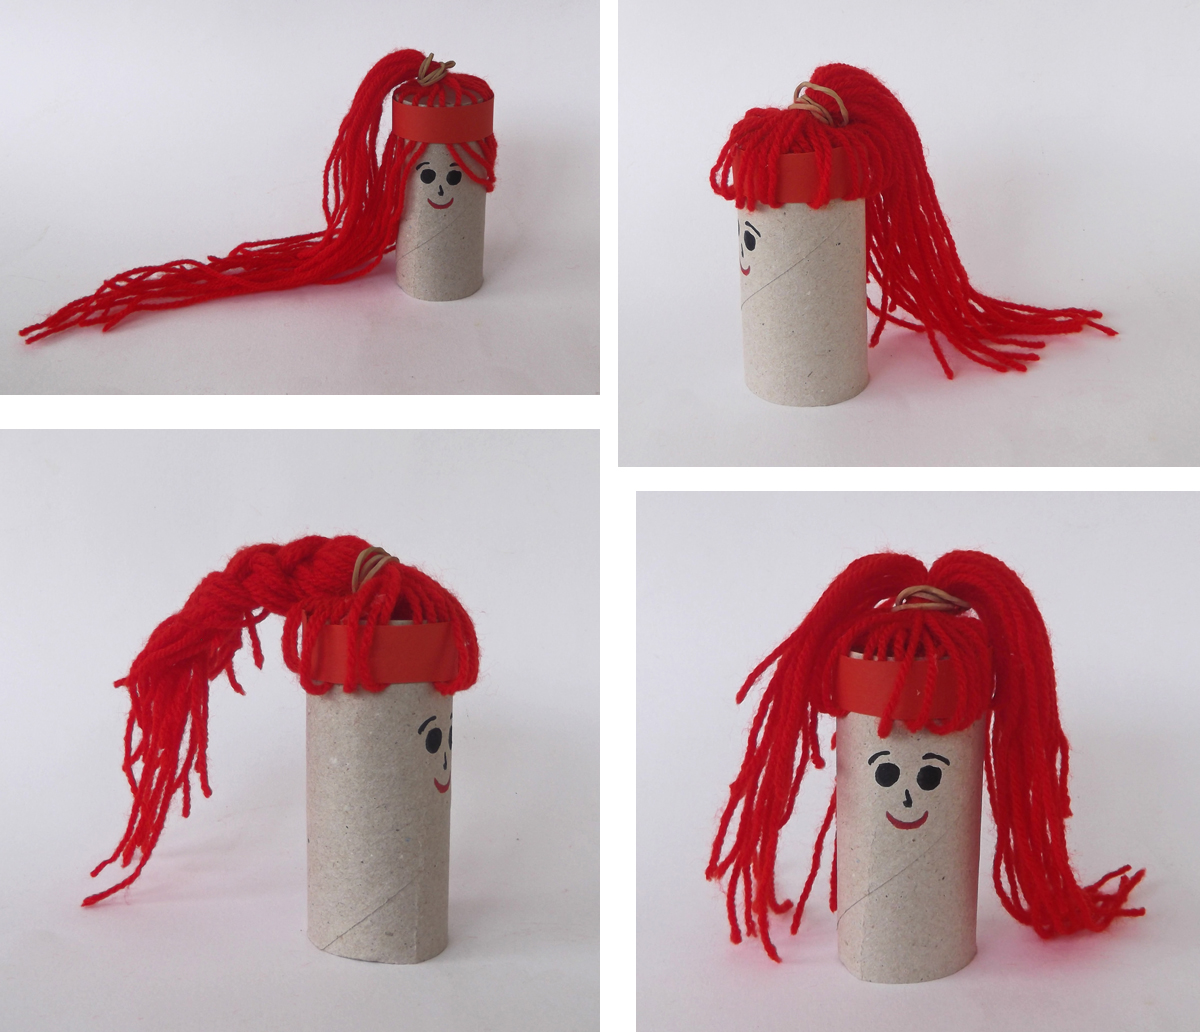 crafts, hait, knitting yarn, toilet paper roll, paper puppets, paper dolls, doll, puppet, kids crafts